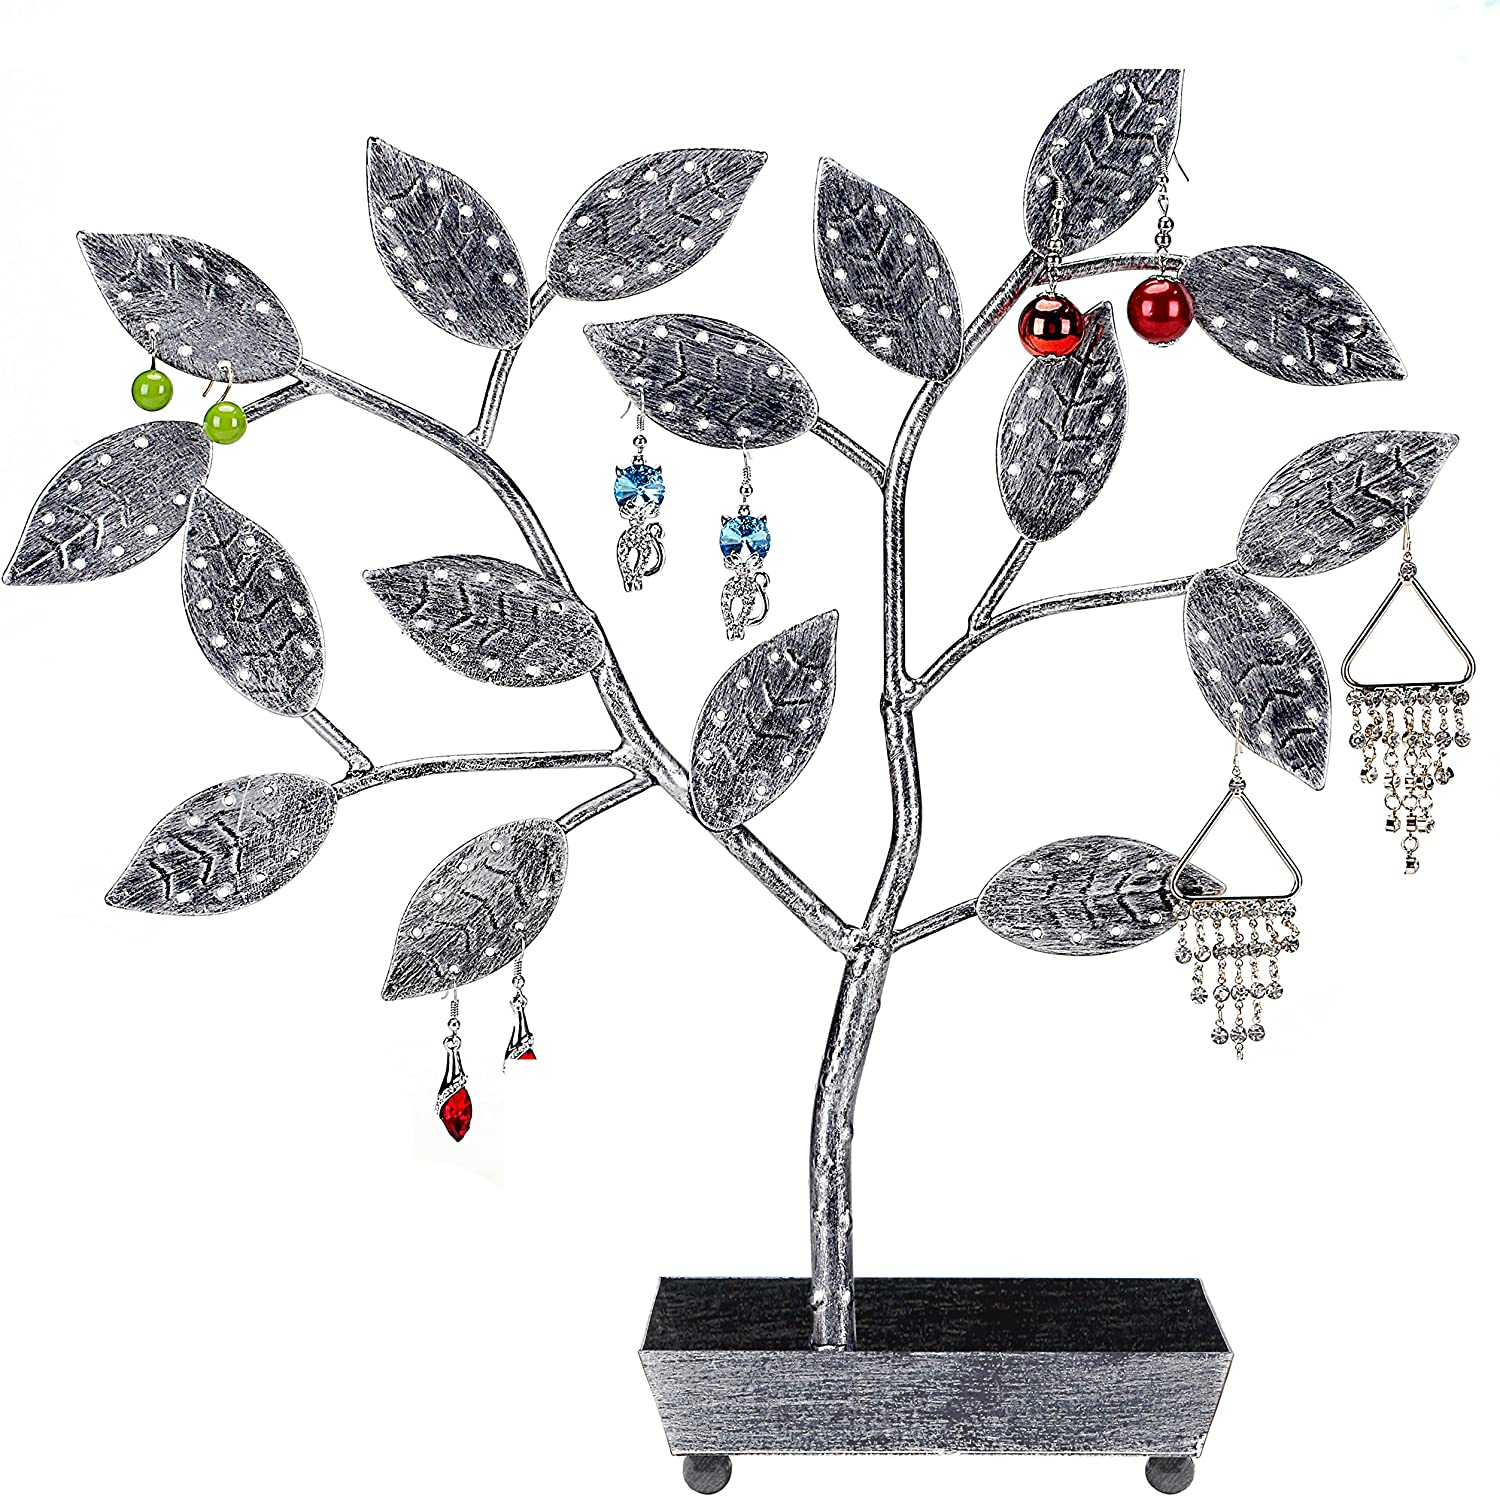 MyGift Jewelry Tree, Earring Necklace Hanger Holder with Ring Dish Tray, Silver